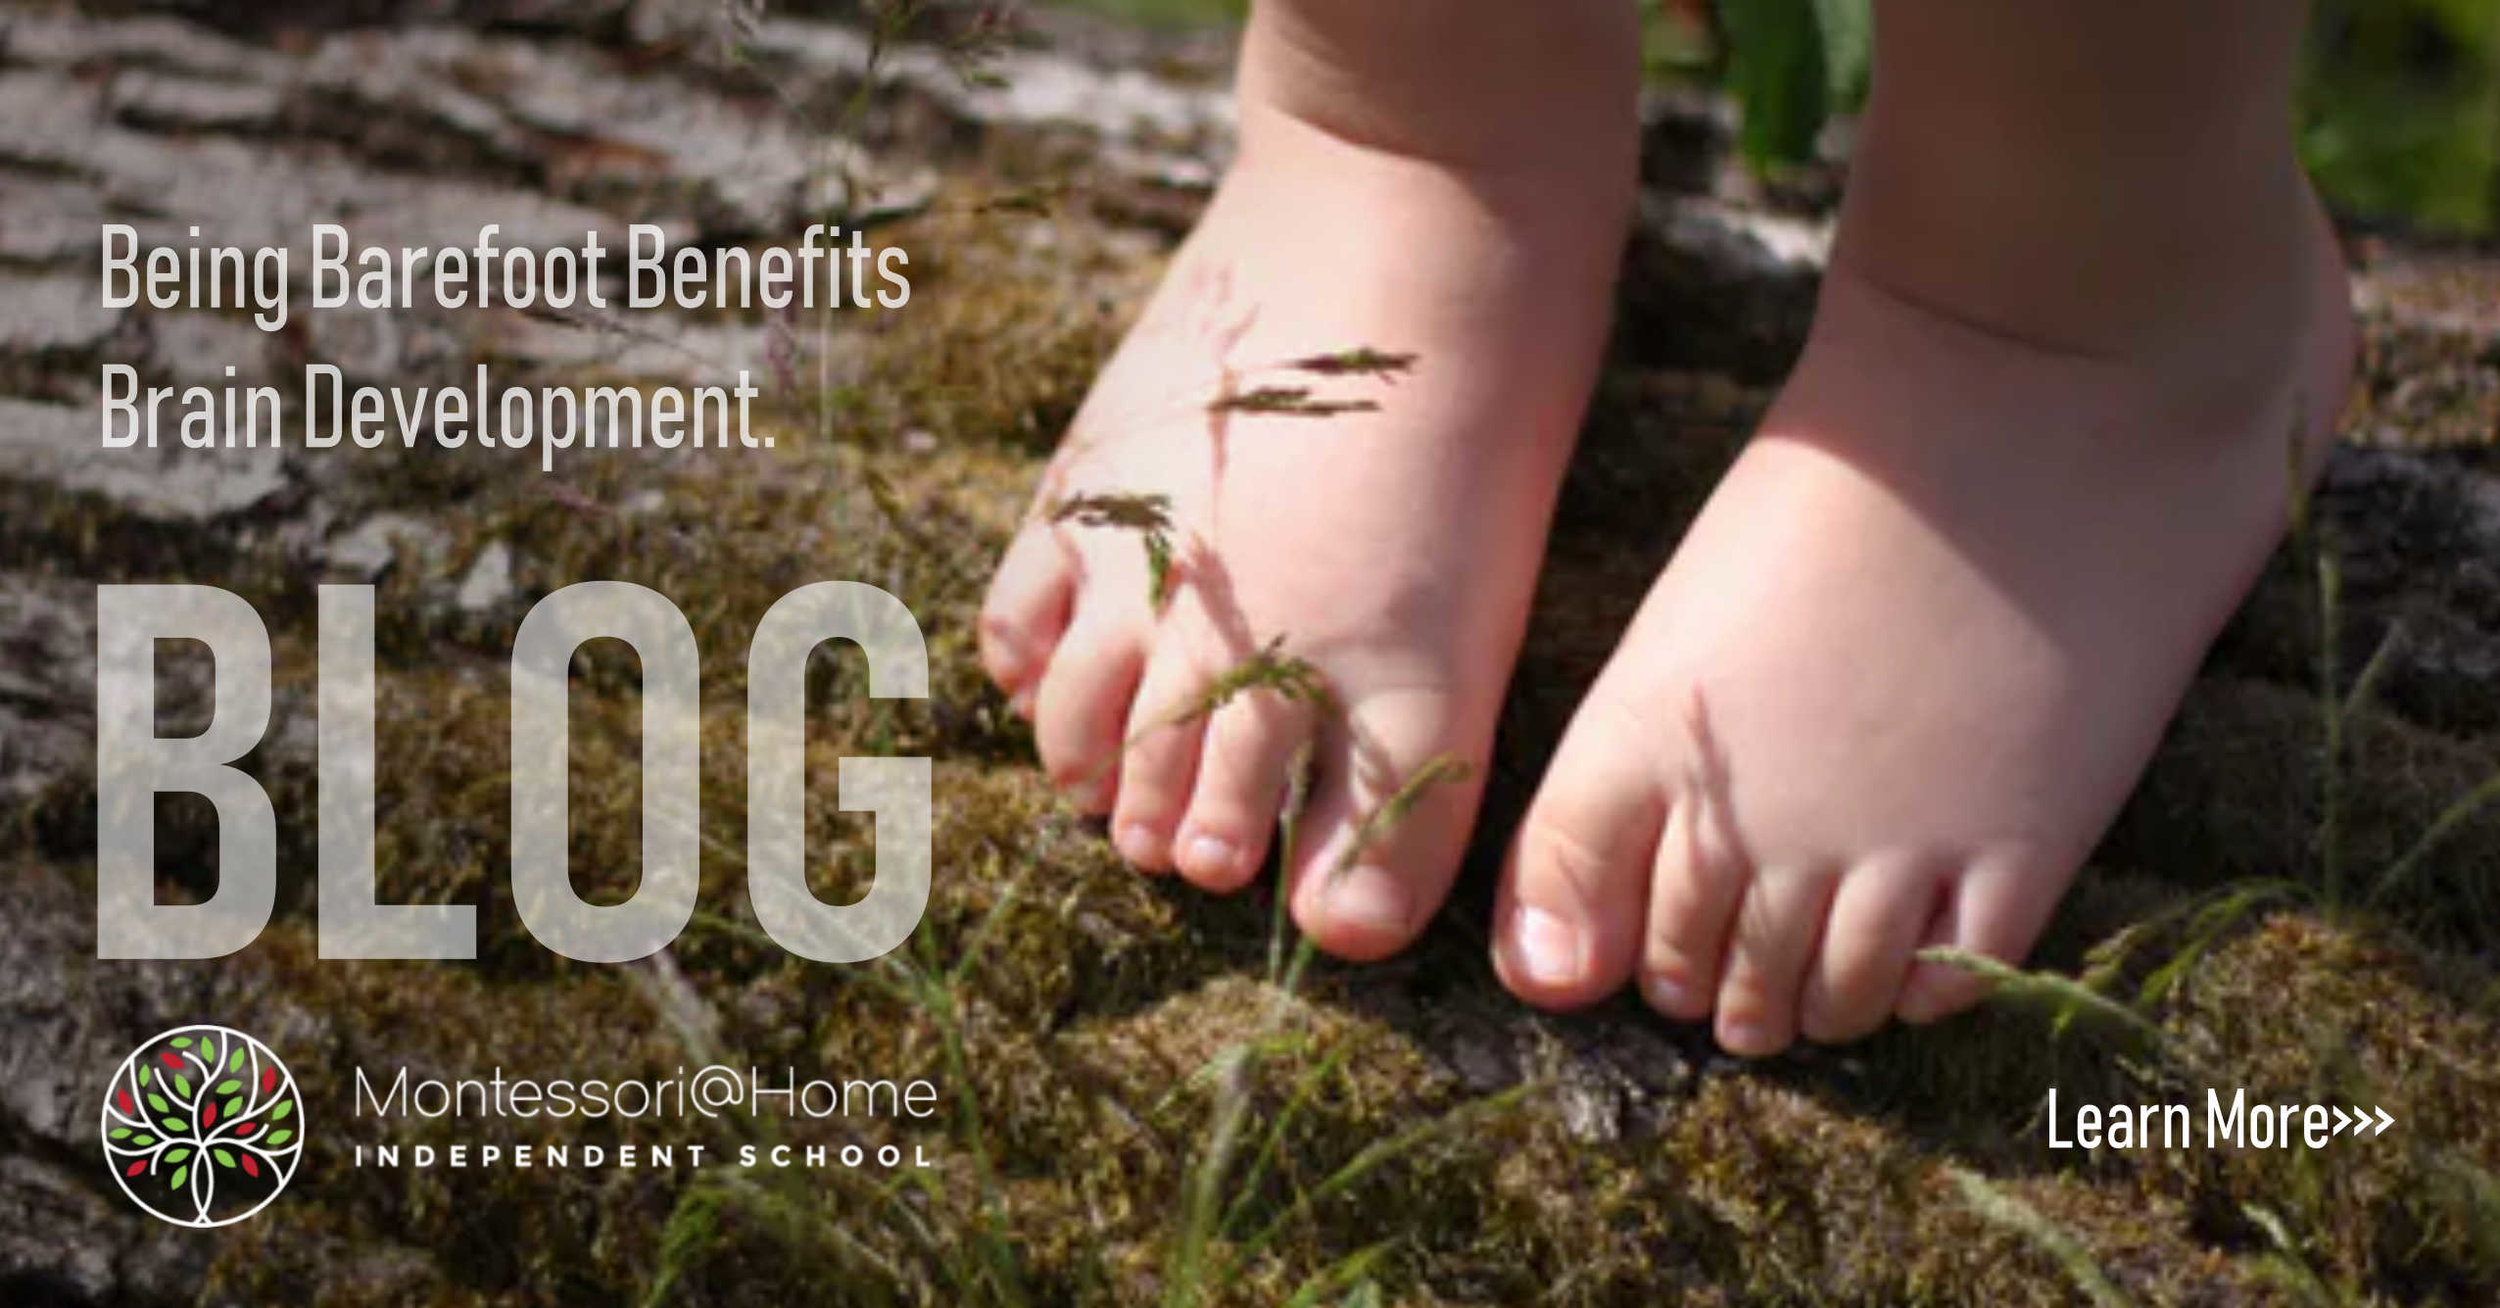 Montessori at home marketing being barefoot blog thumbnail  learn more.jpg